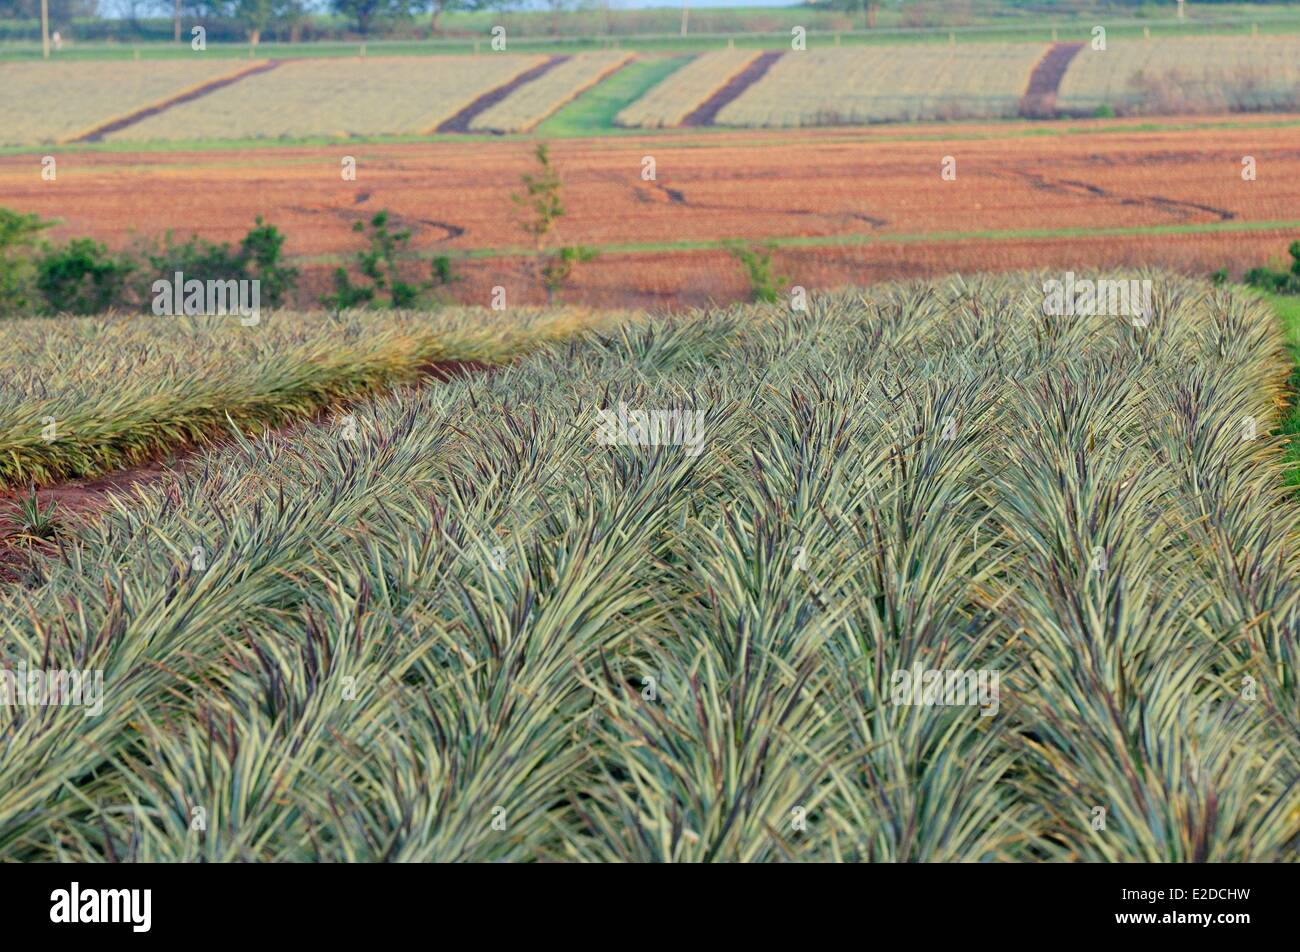 Swaziland Manzini district Malkerns valley pineapple cultivation - Stock Image